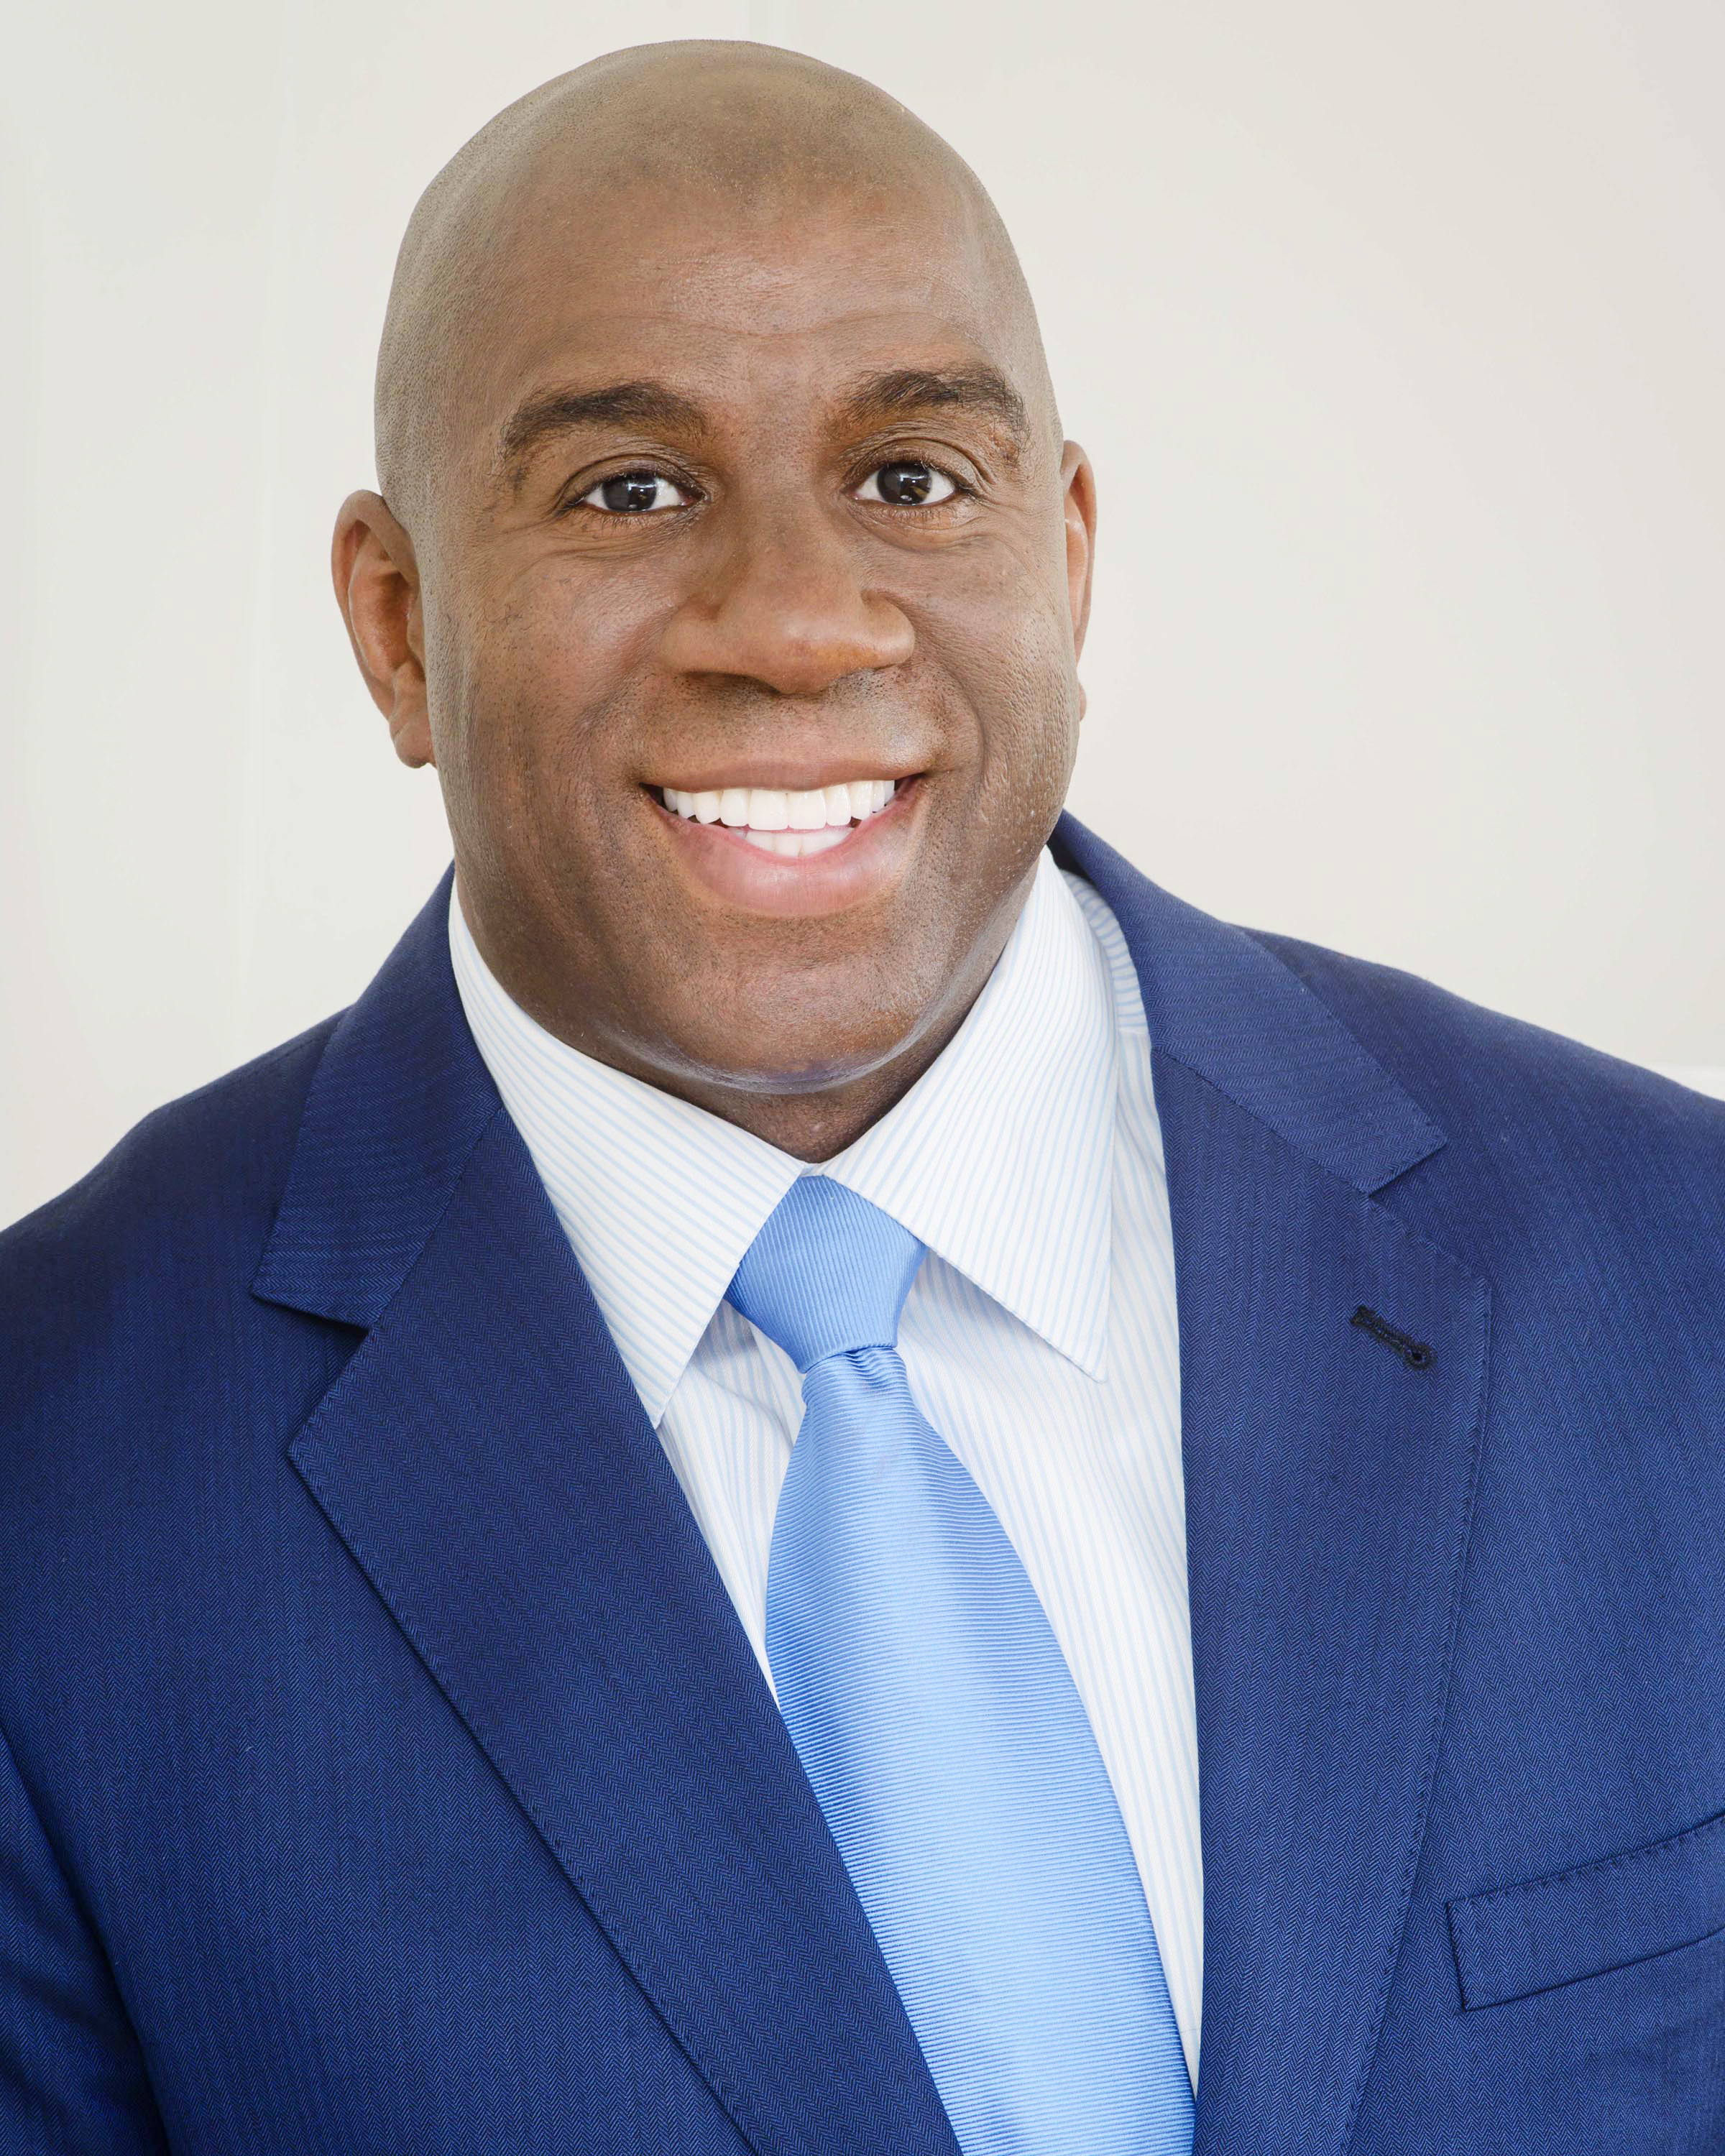 Magic Johnson, NBA legend and entrepreneur